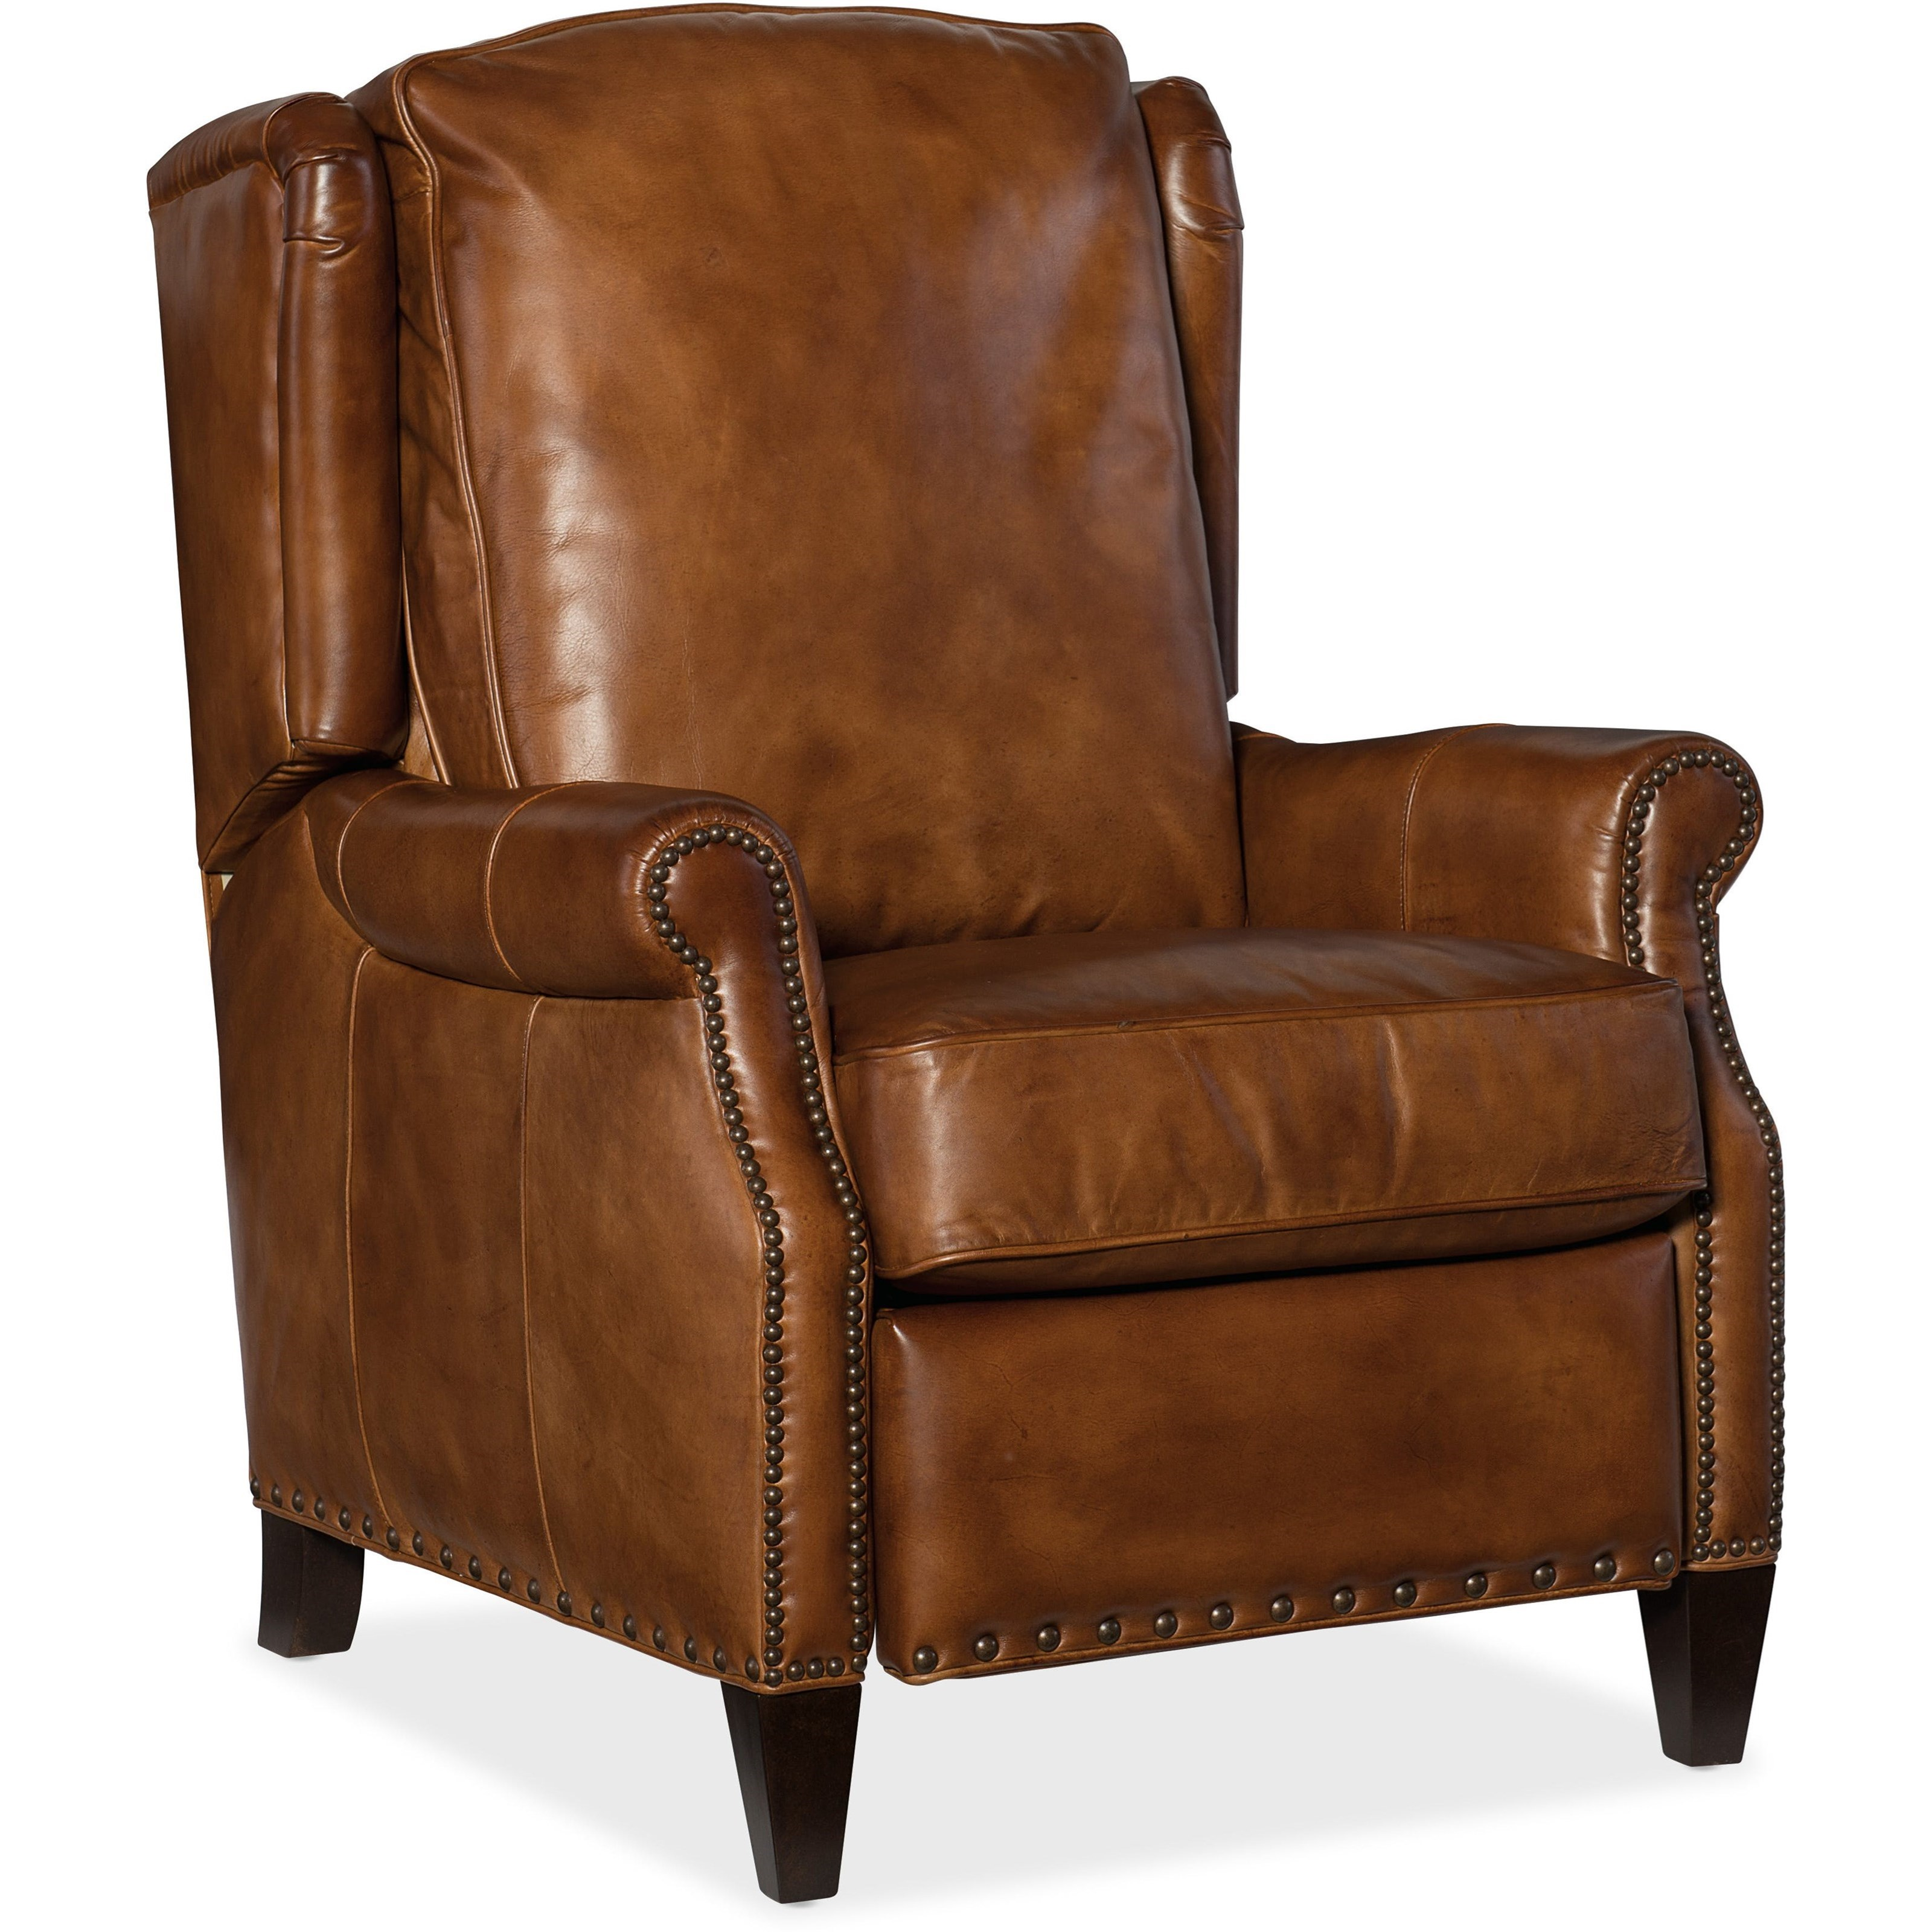 Reclining Chairs Silas Recliner by Hooker Furniture at Baer's Furniture